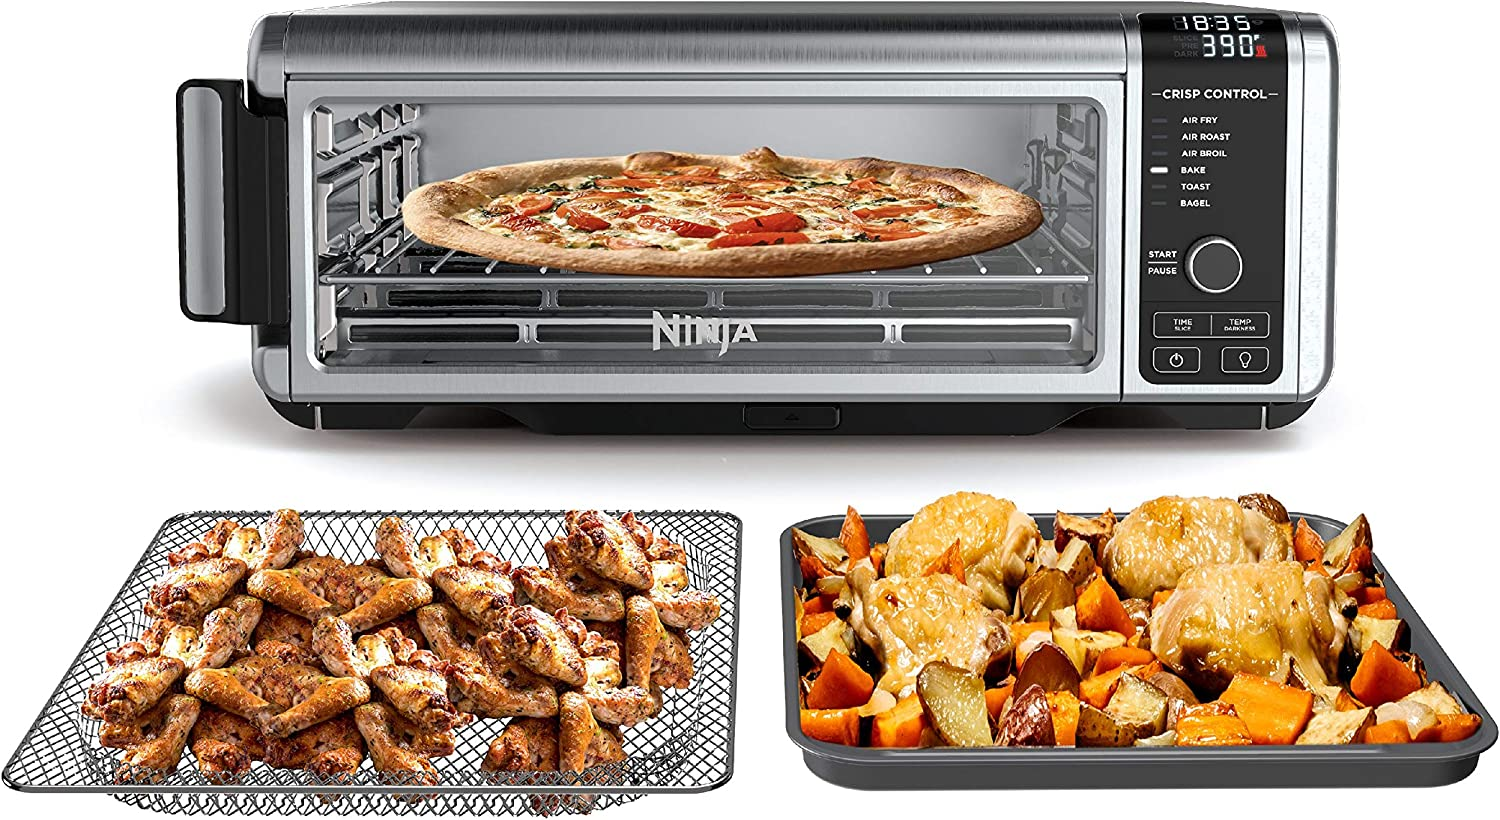 Ninja SP100 Foodi™ Digital Air Fry Oven in Black and Silver, Convection Oven, Toaster, Air Fryer, Flip-Away for Storage, 1800 watts, (Stainless Steel)